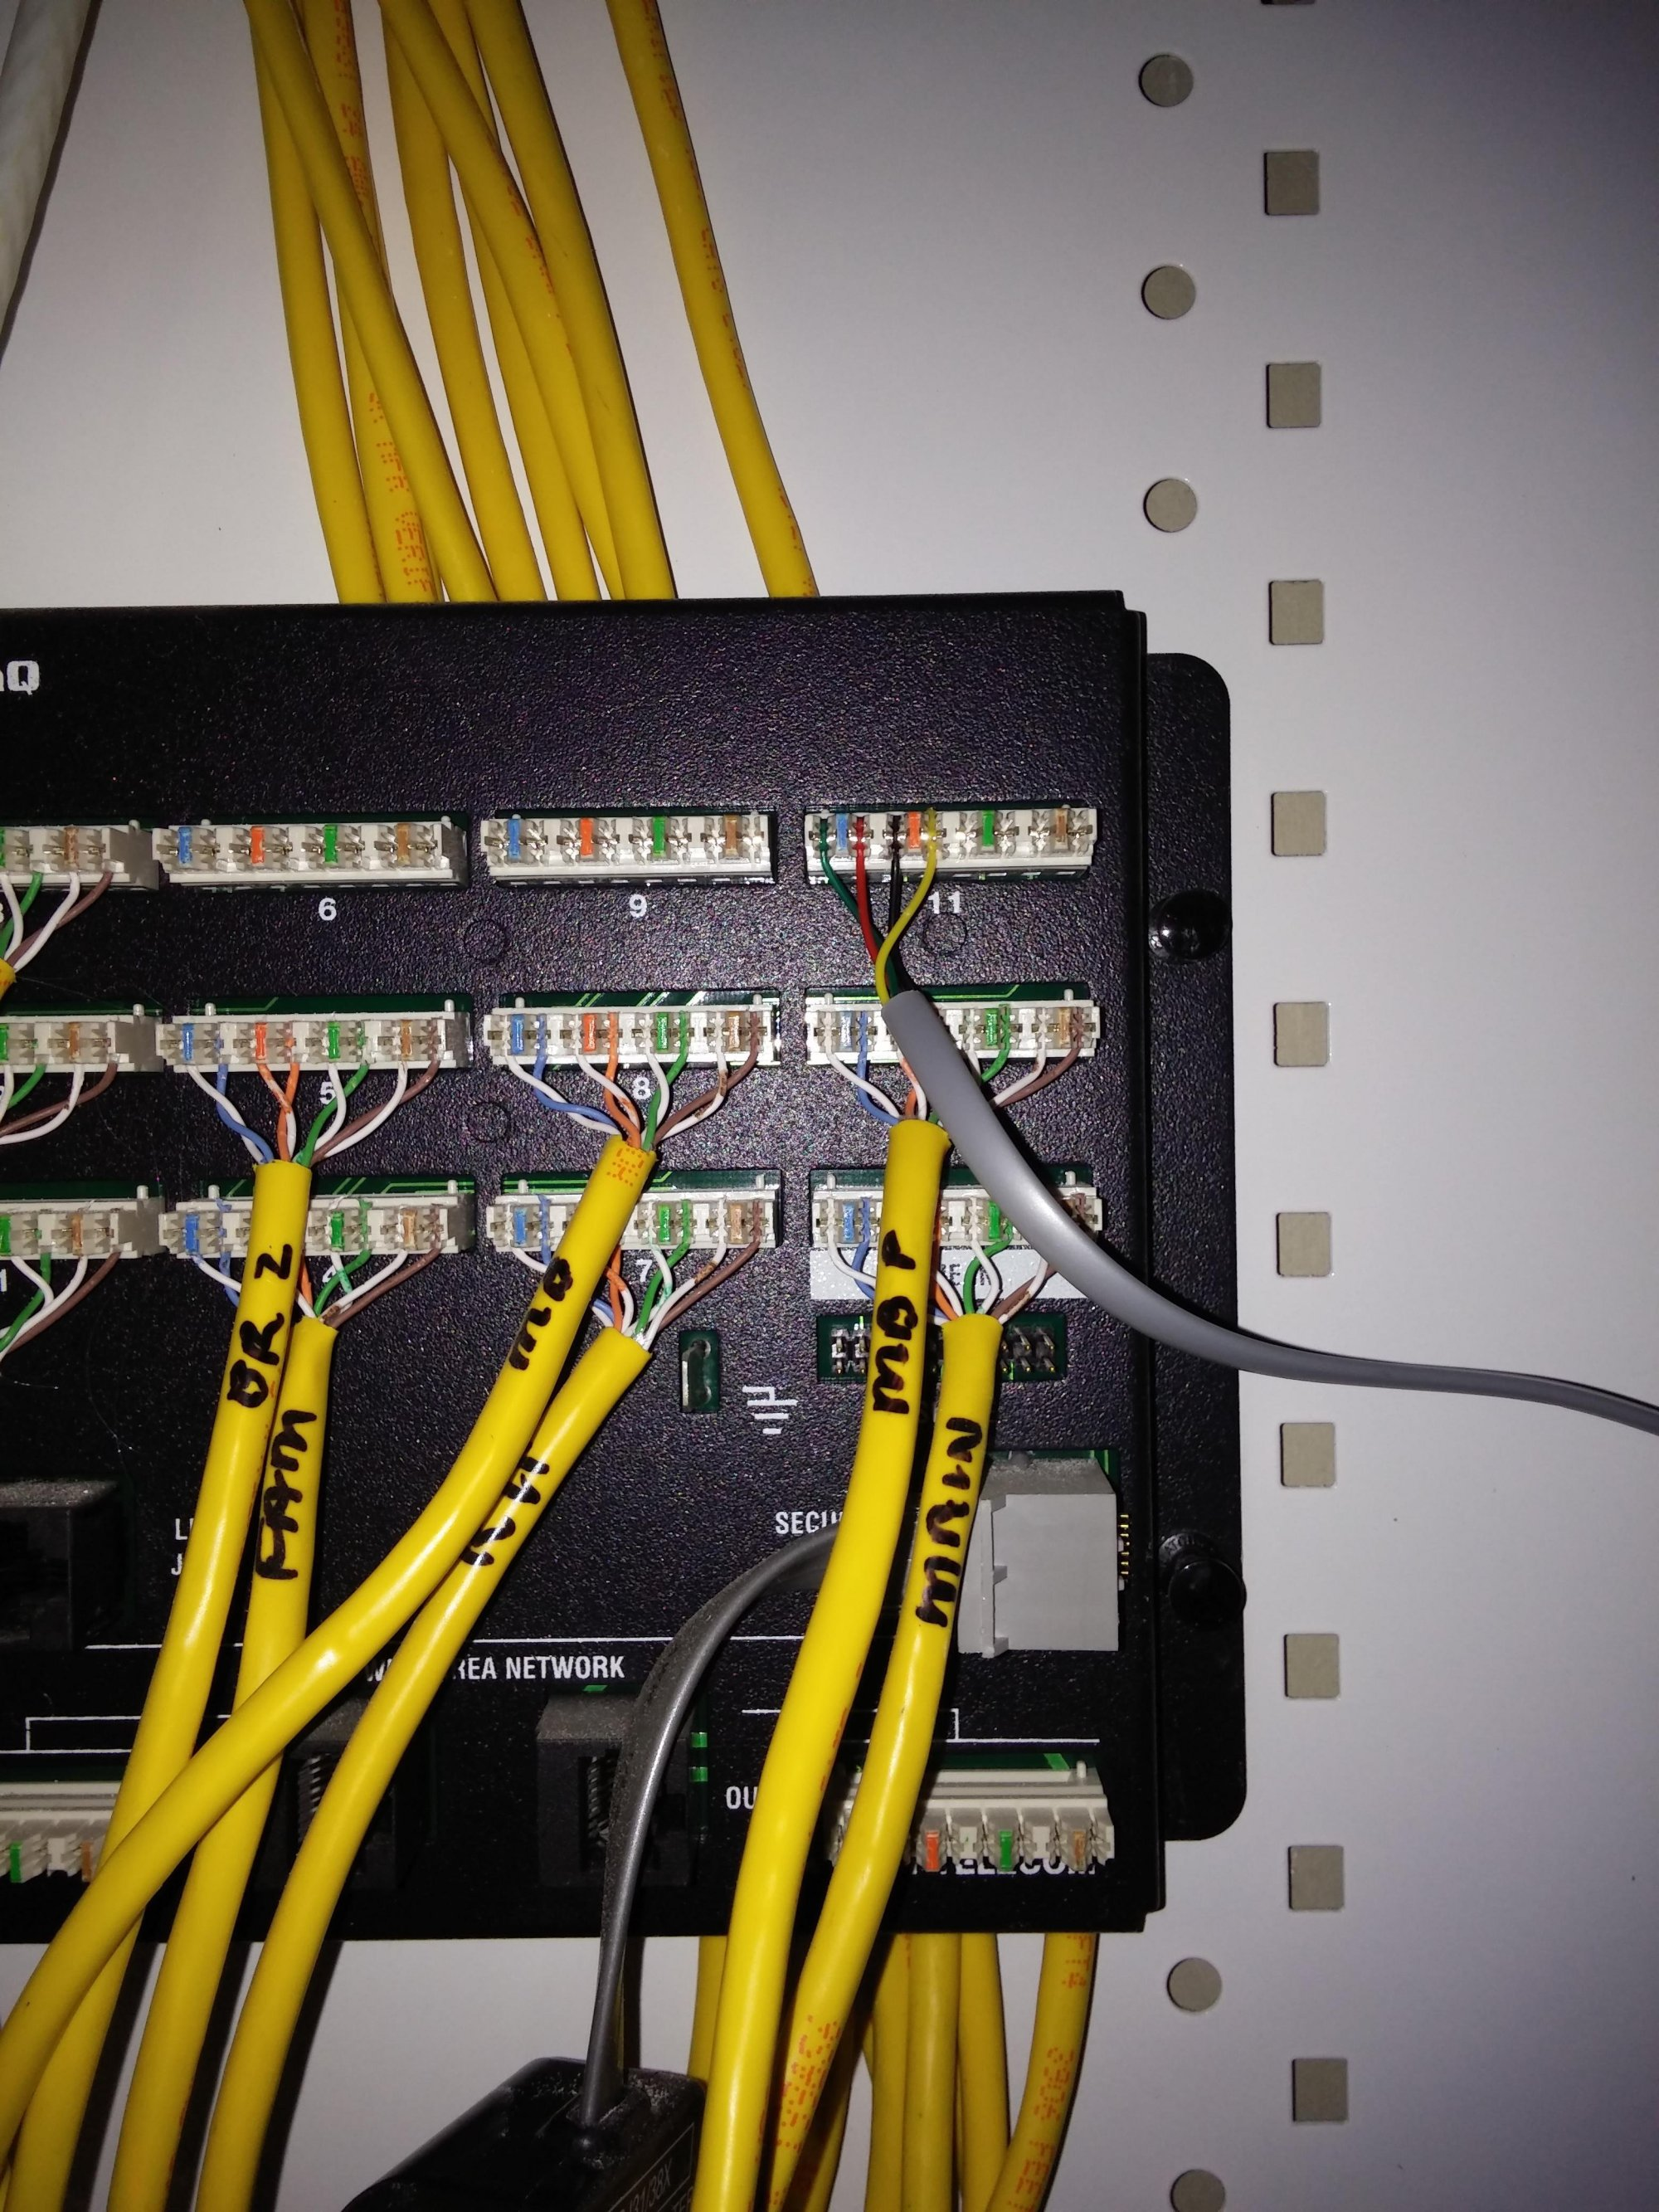 hight resolution of on q wiring diagram phone wiring diagram dat on q rj25 wiring diagram on q wiring diagram